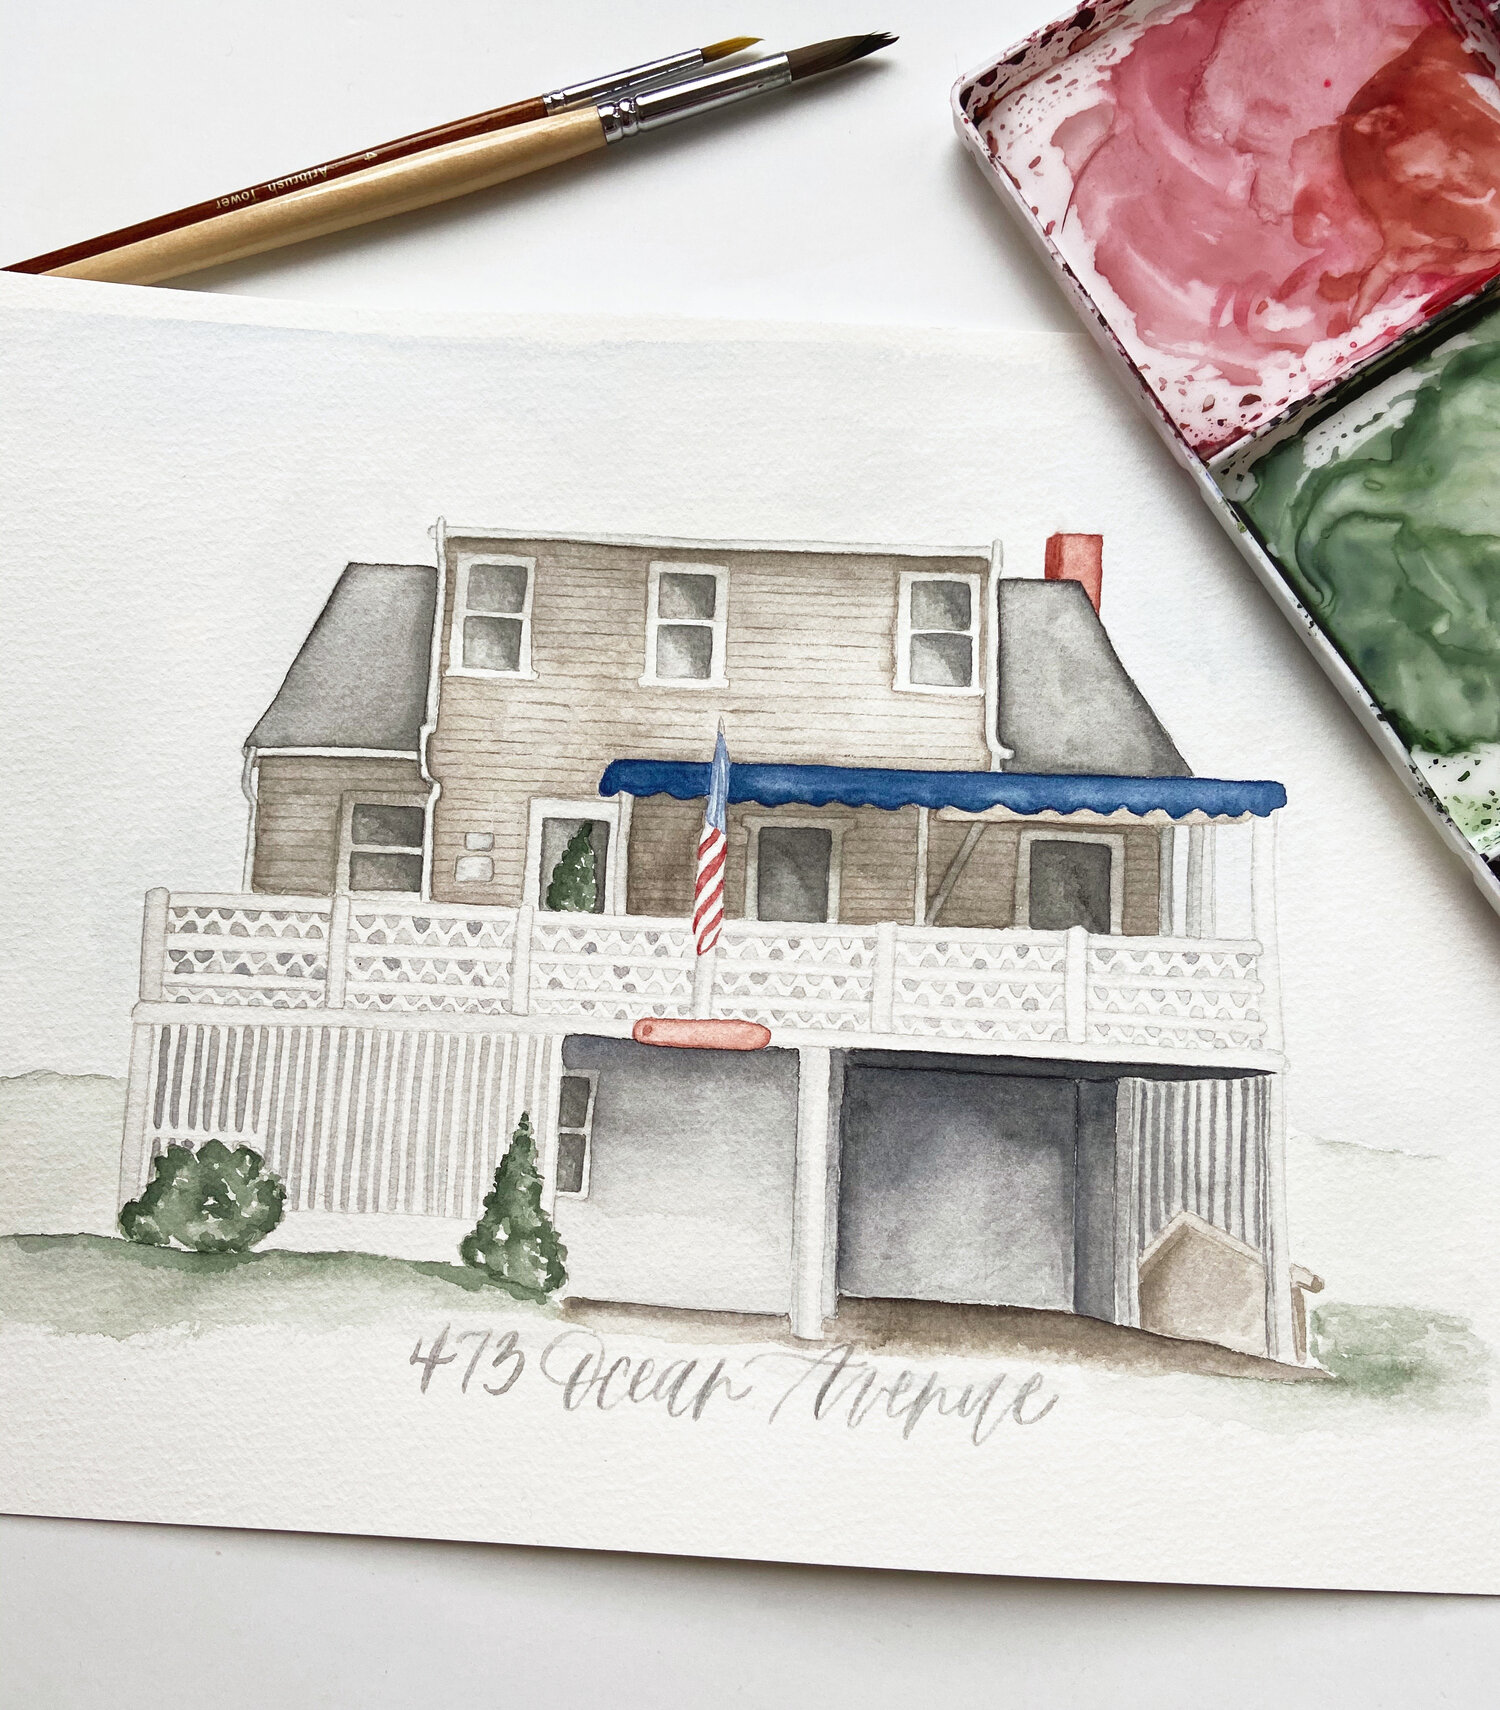 Custom Watercolor Painting watercolor illustration portrait painting from photo house painting